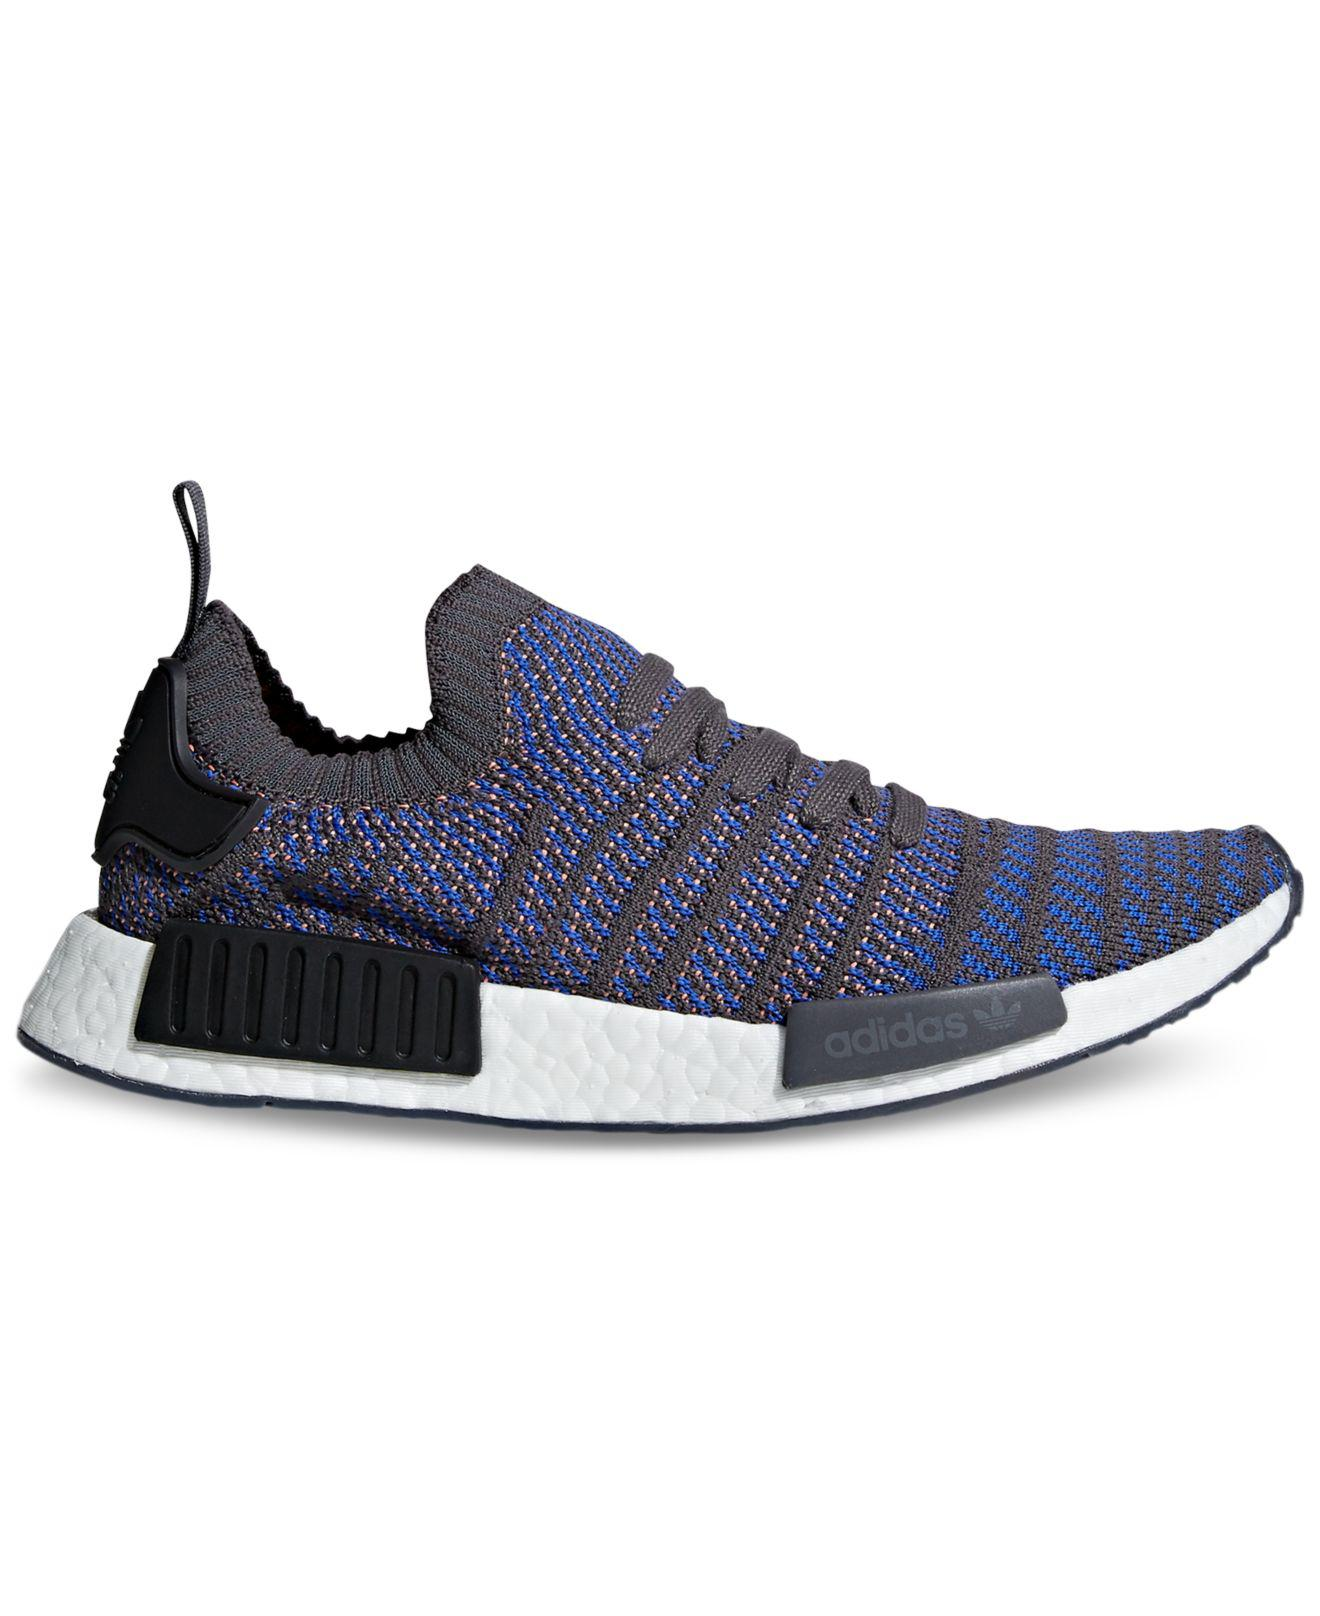 79c0bc5645e99 ... promo code for lyst adidas nmd r1 casual sneakers from finish line in  blue for men